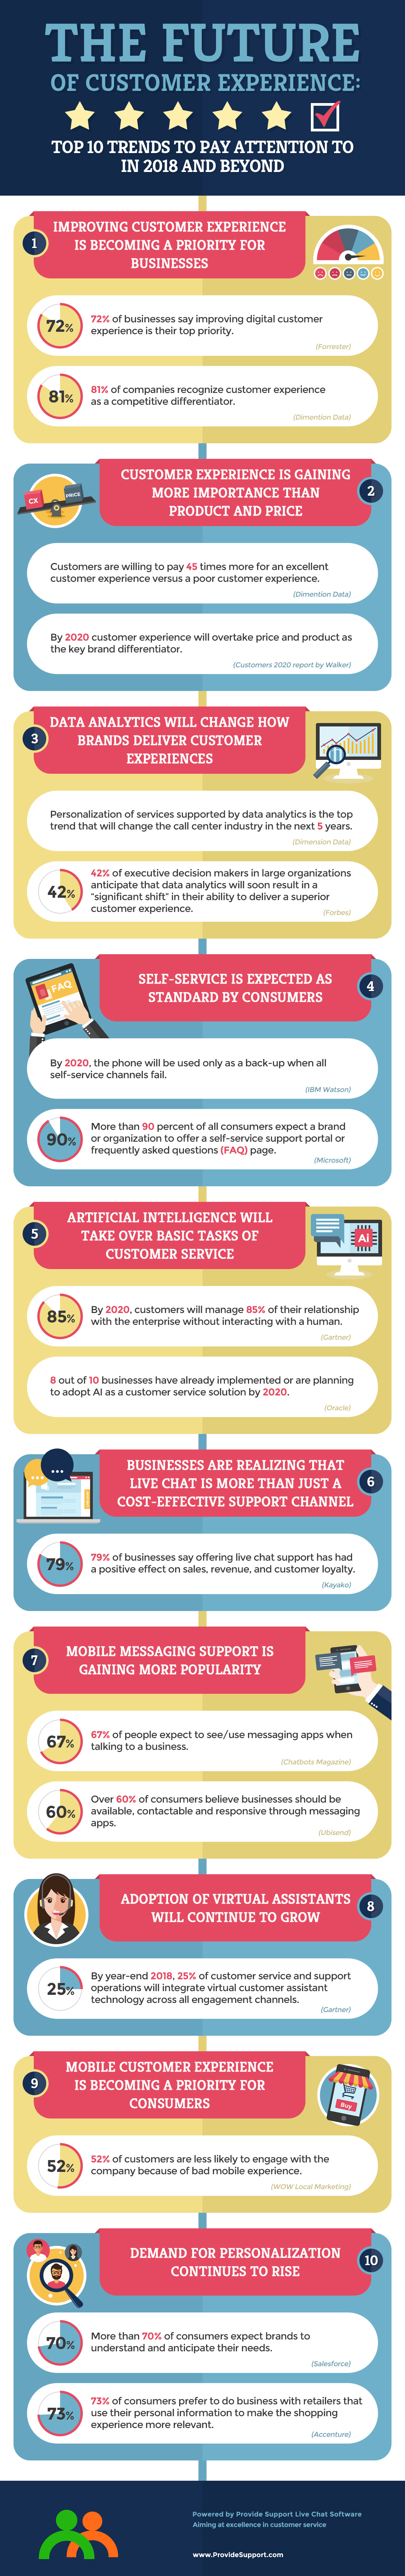 The Future of Customer Experience: Top 10 Trends for 2018 and Beyond [Inforgraphic from Provide Support]